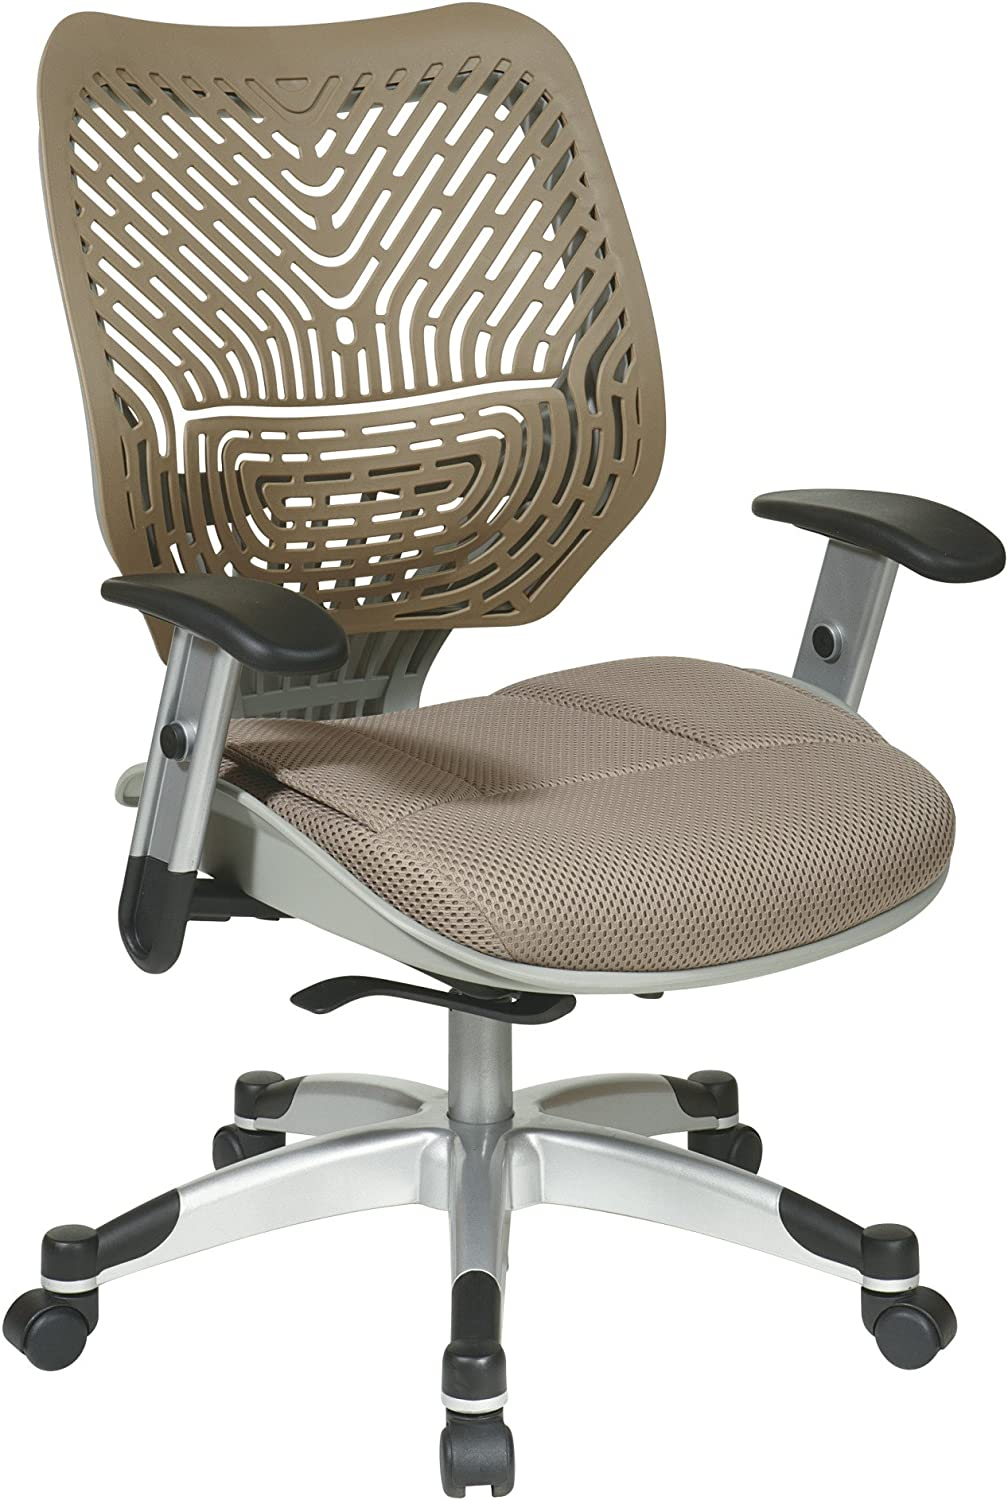 SPACE Seating REVV Self Adjusting SpaceFlex Latte Backrest Support and Paddeed Latte Mesh Seat with Adjustable Arms and Platinum Finish Base Managers Chair